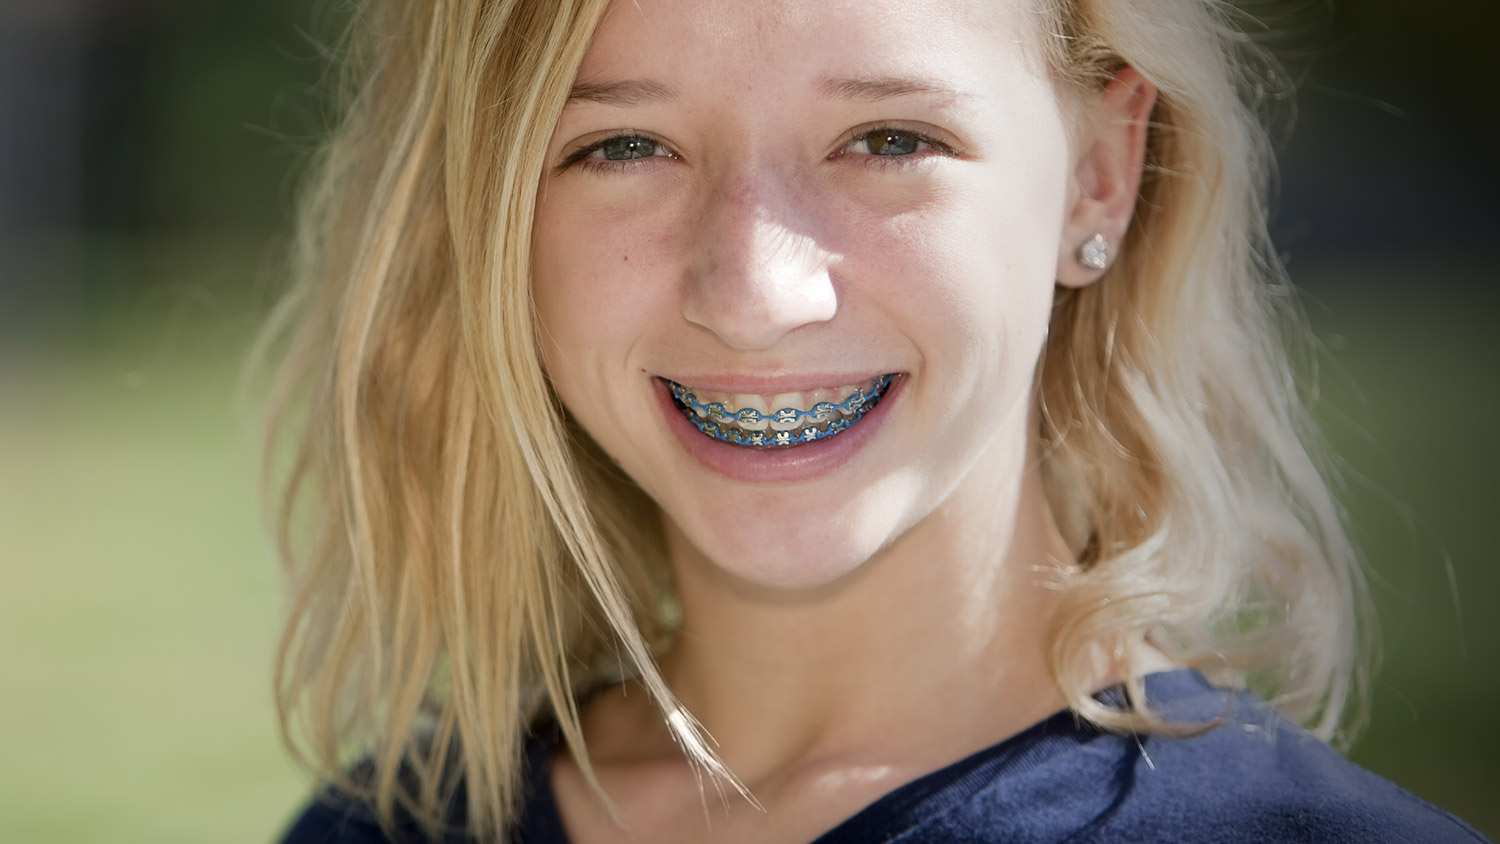 Southern Dental Specialists - orthodontics & oral surgery